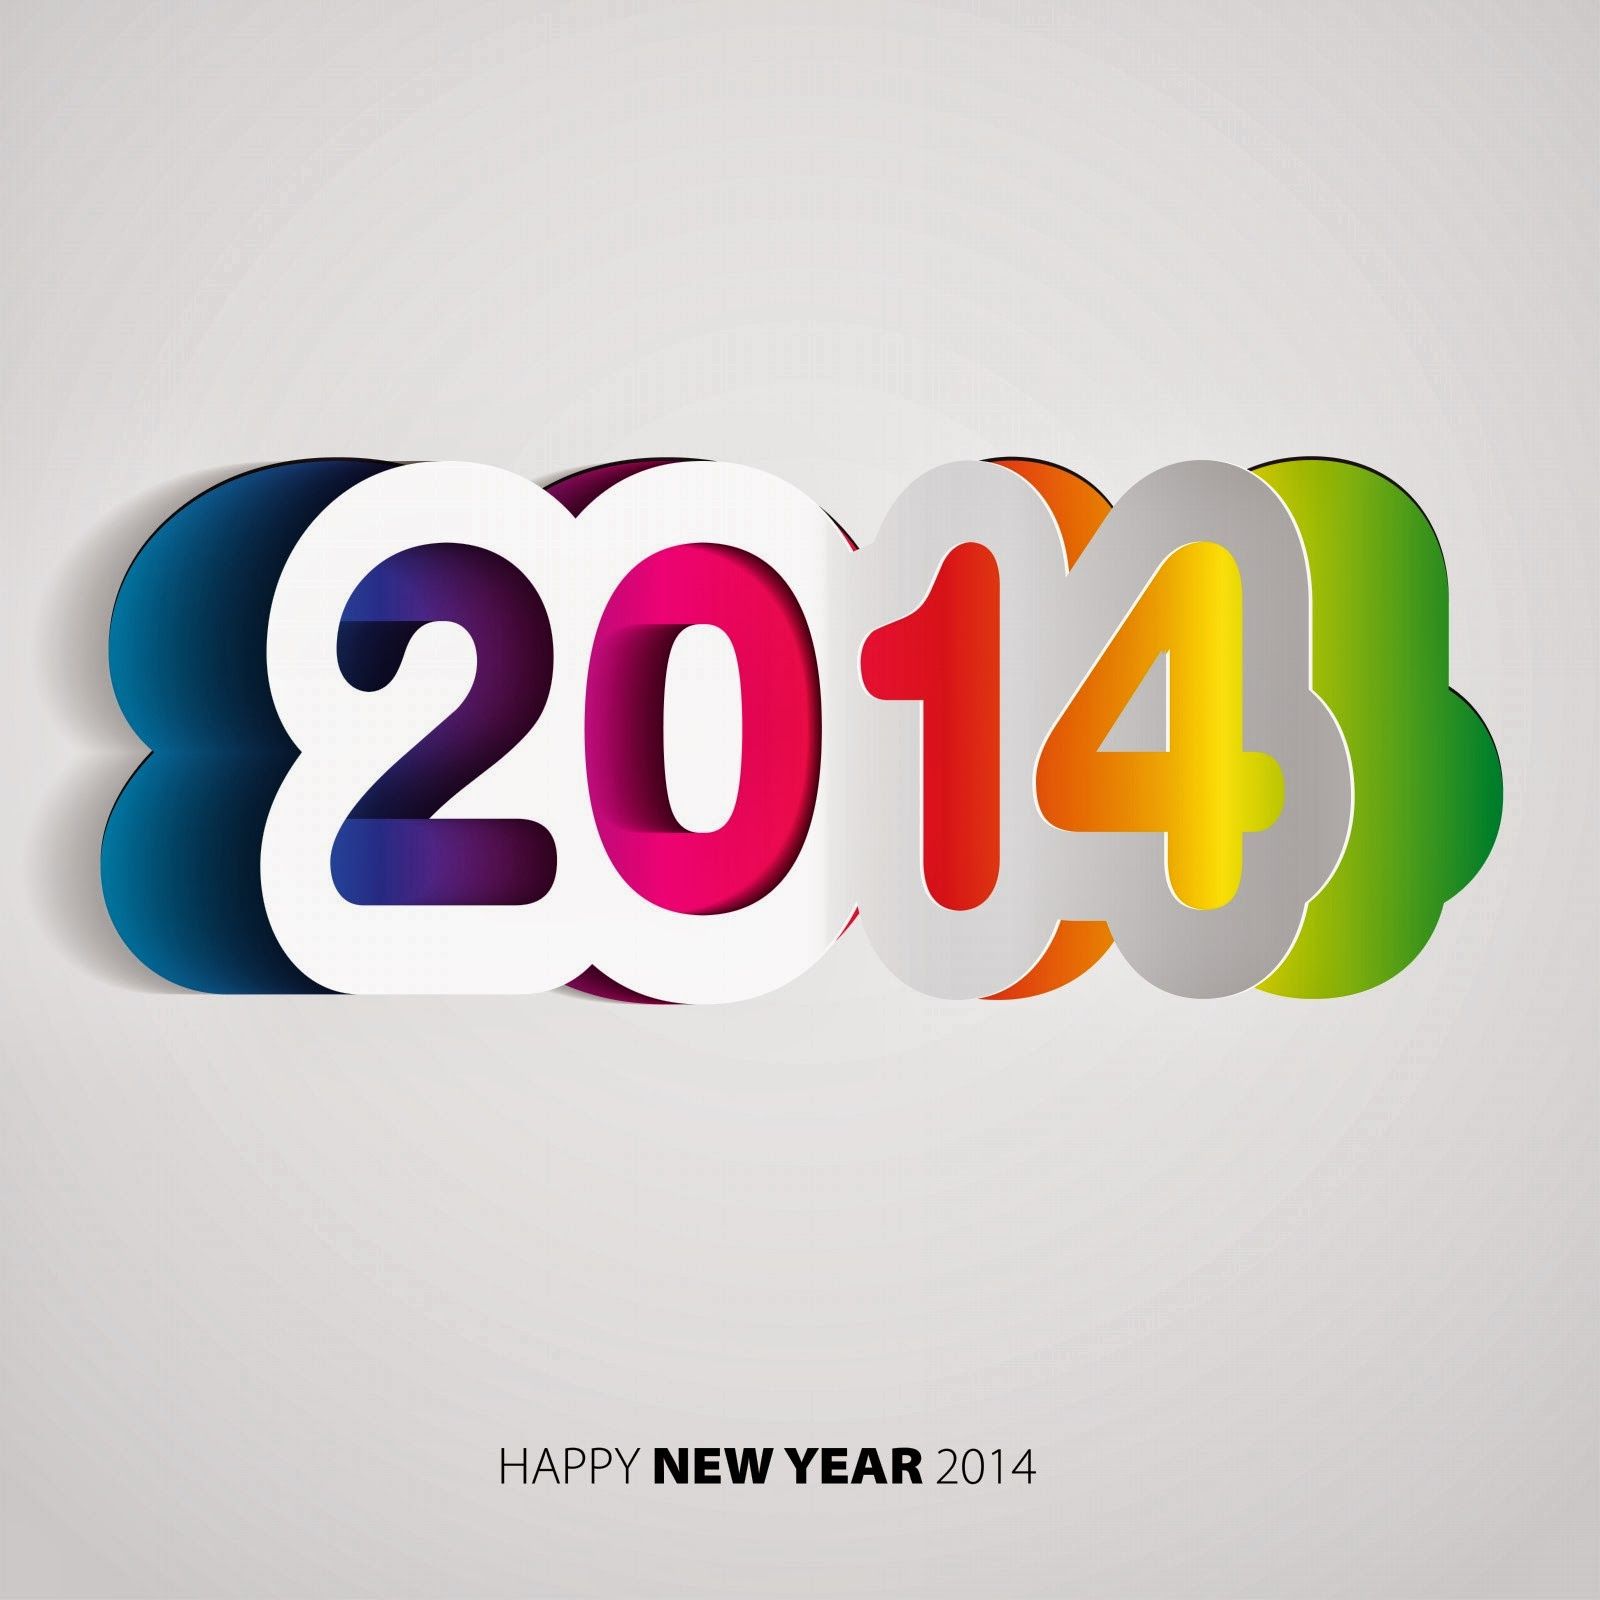 Amazing 2014 text designs happy new year web designer seo happy new year designs for facebook status twitter photoshop tutorials guide baditri Gallery